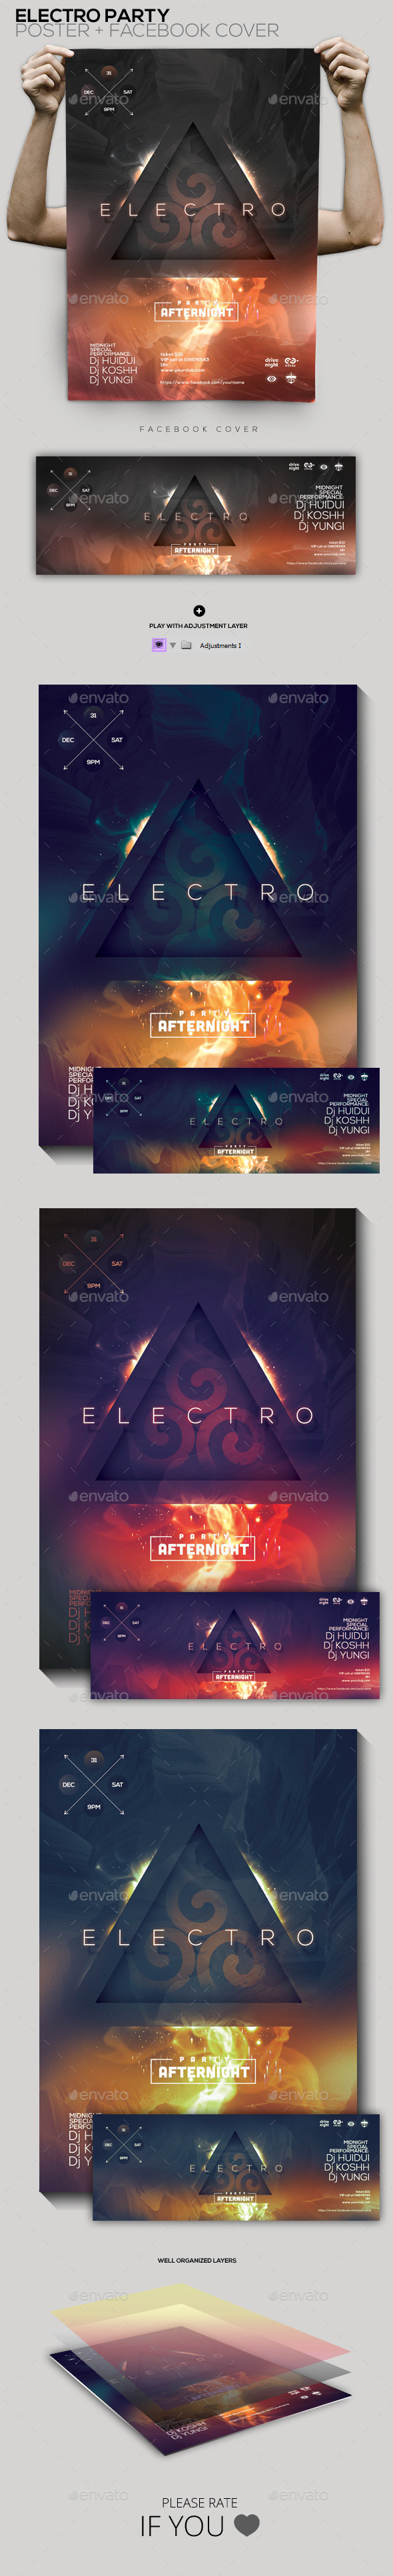 Electro Party Flyer/Poster/Facebook Cover - Clubs & Parties Events